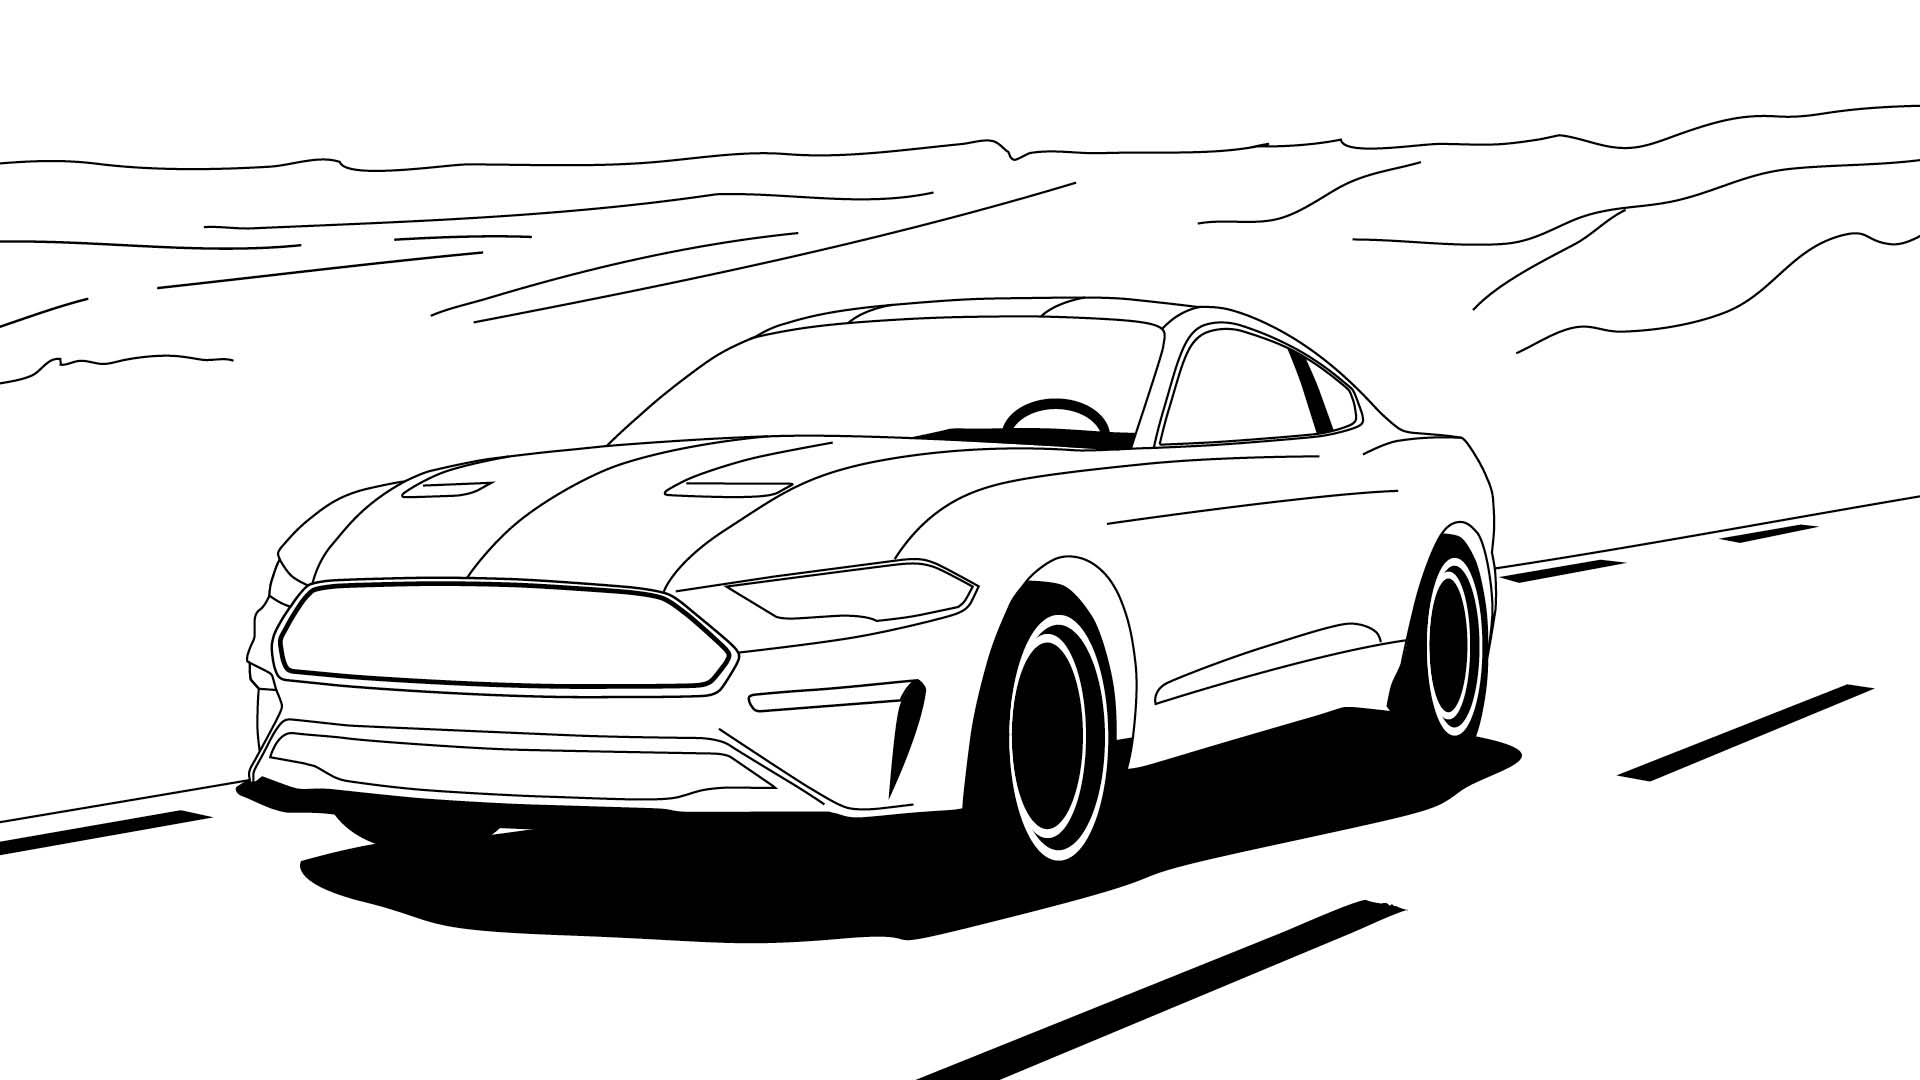 Ford Stay Home Mustang colouring in poster